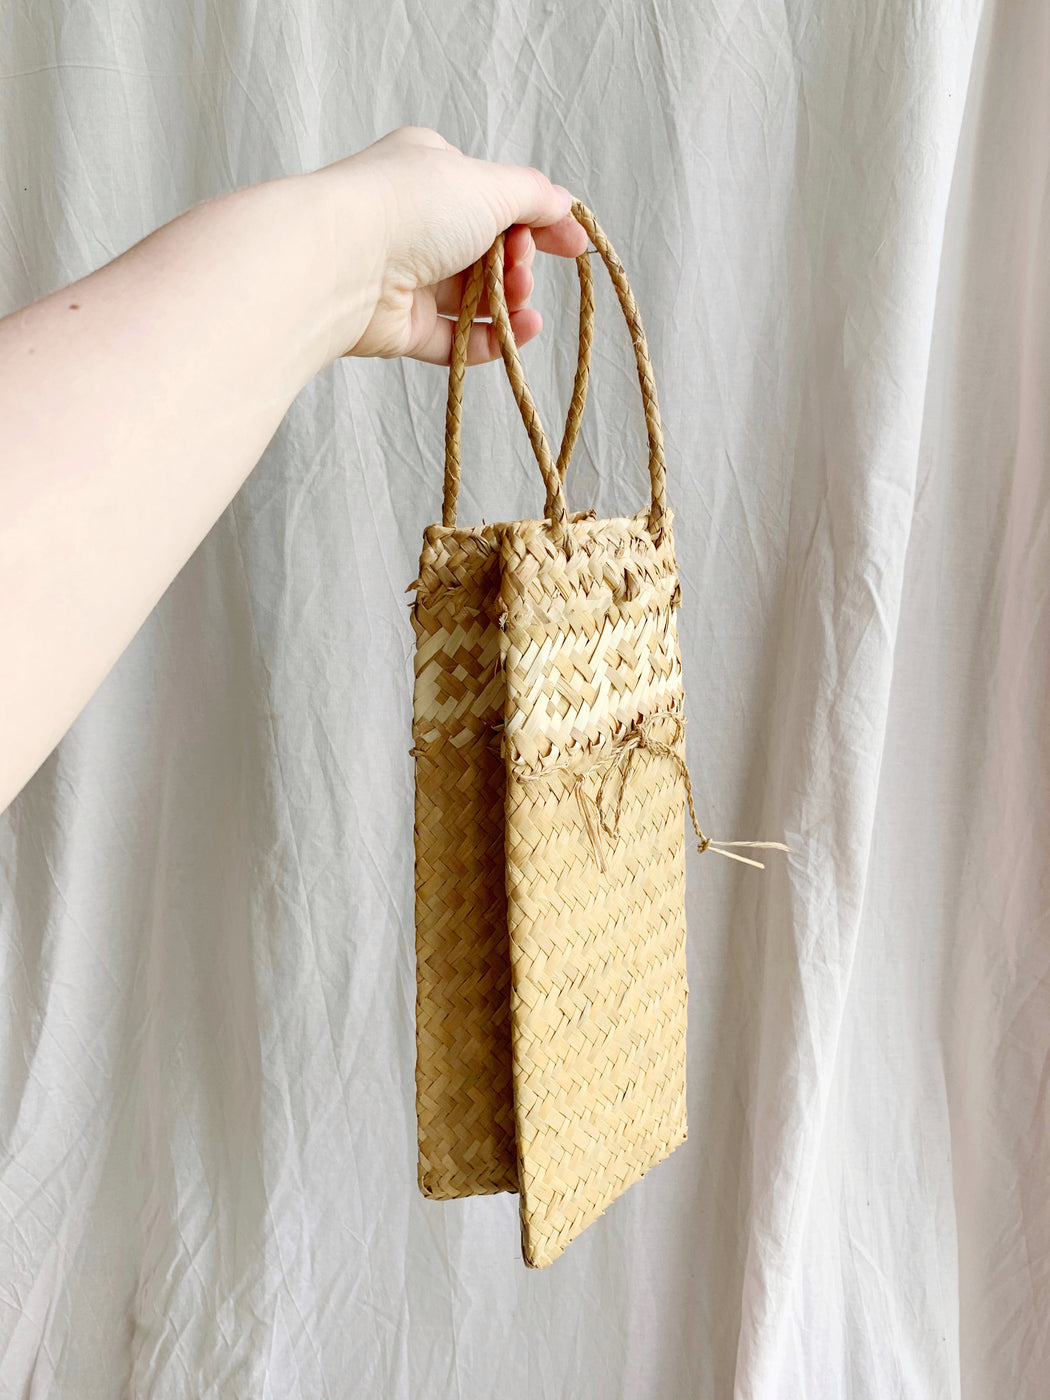 Cane Wine Carry Bag - Storytellers Workshop